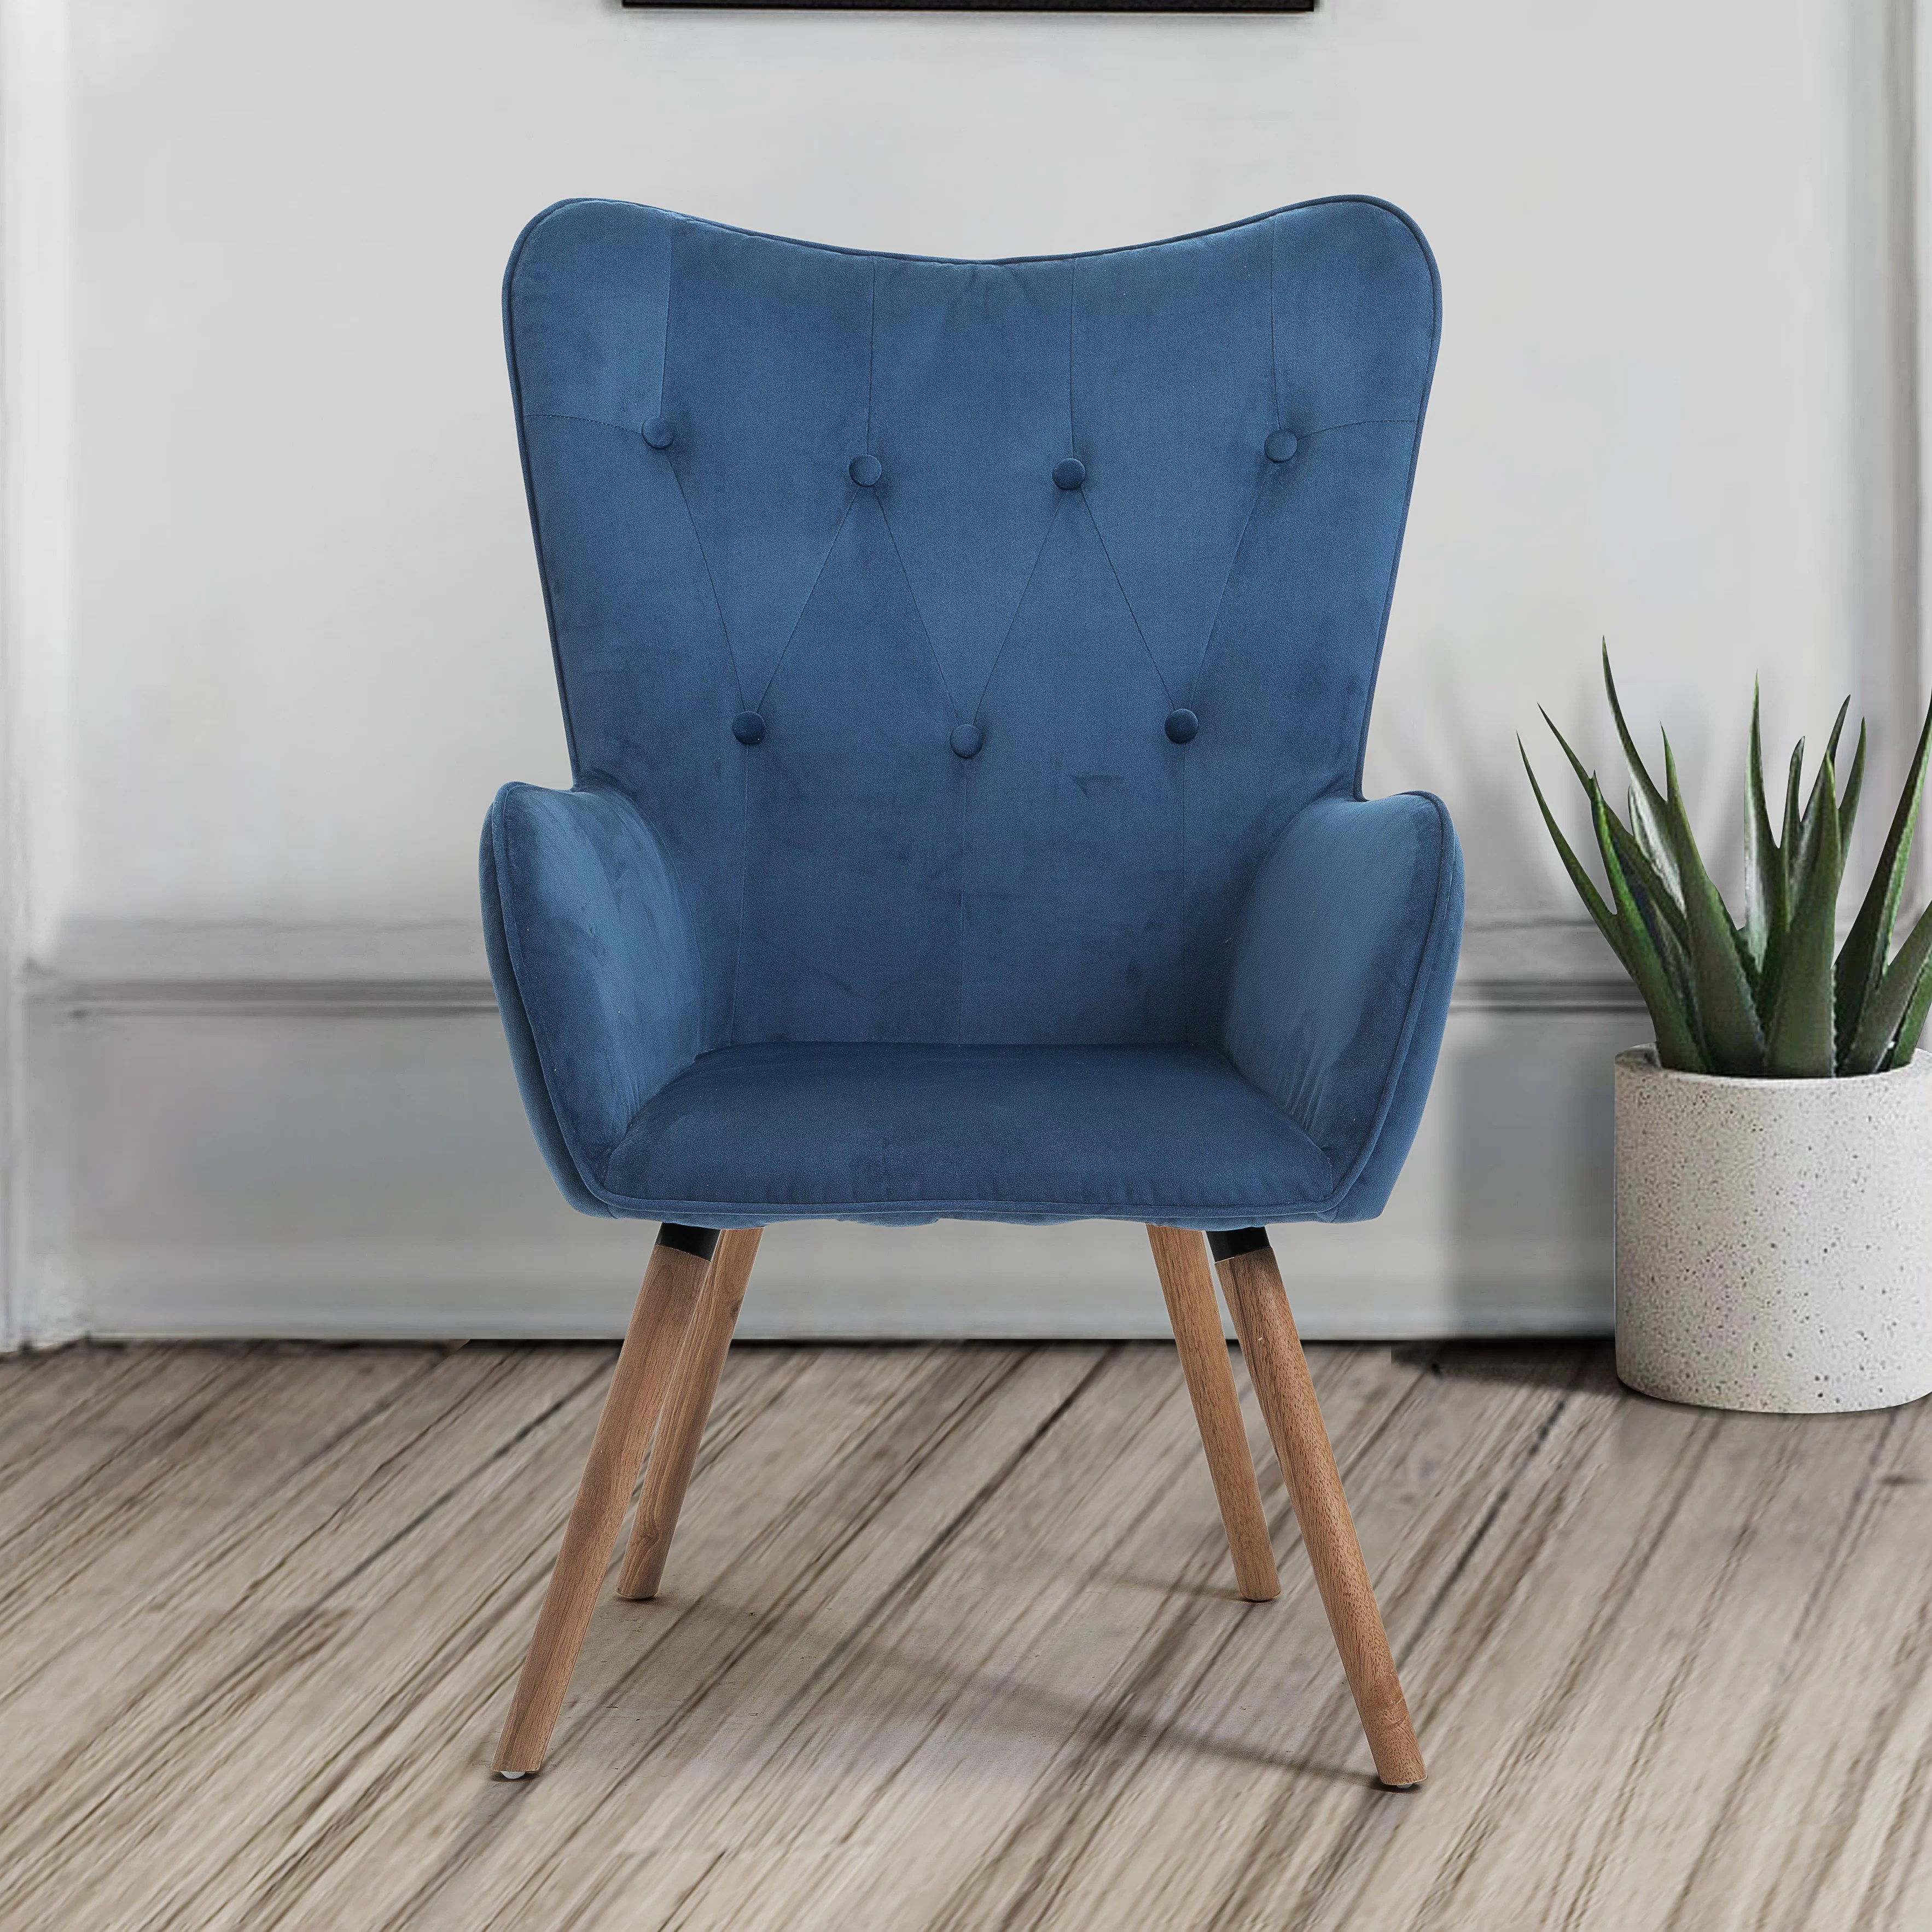 Sacly Lounge Sessel Norden Home Loungesessel Andrukonis